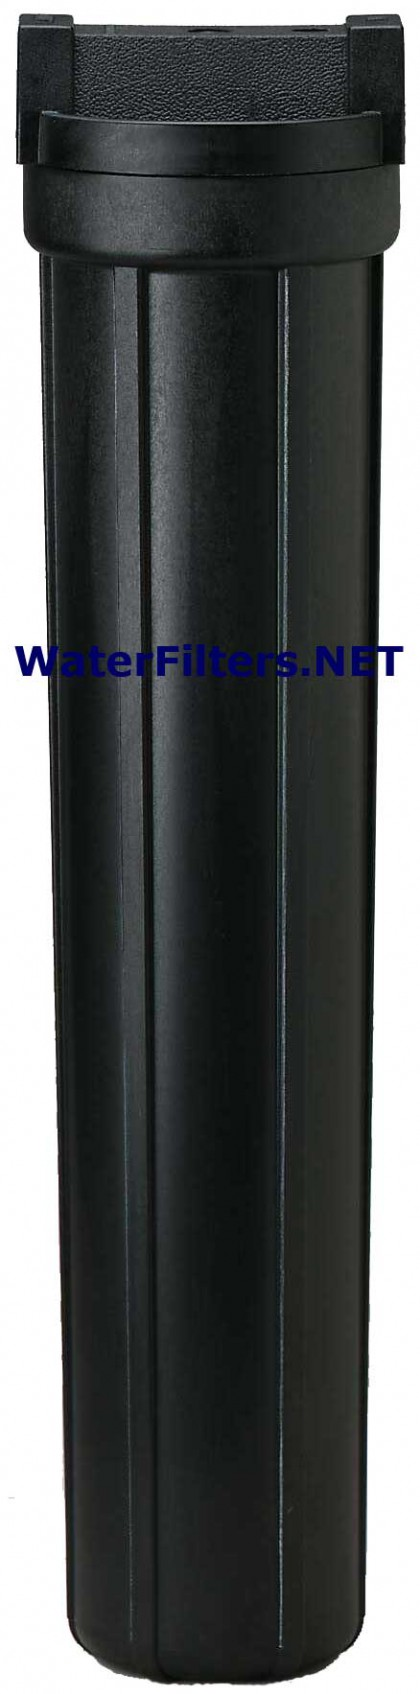 Pentek 158318 - 1/2-Inch #20 High Temperature Slim Line Filter Housing